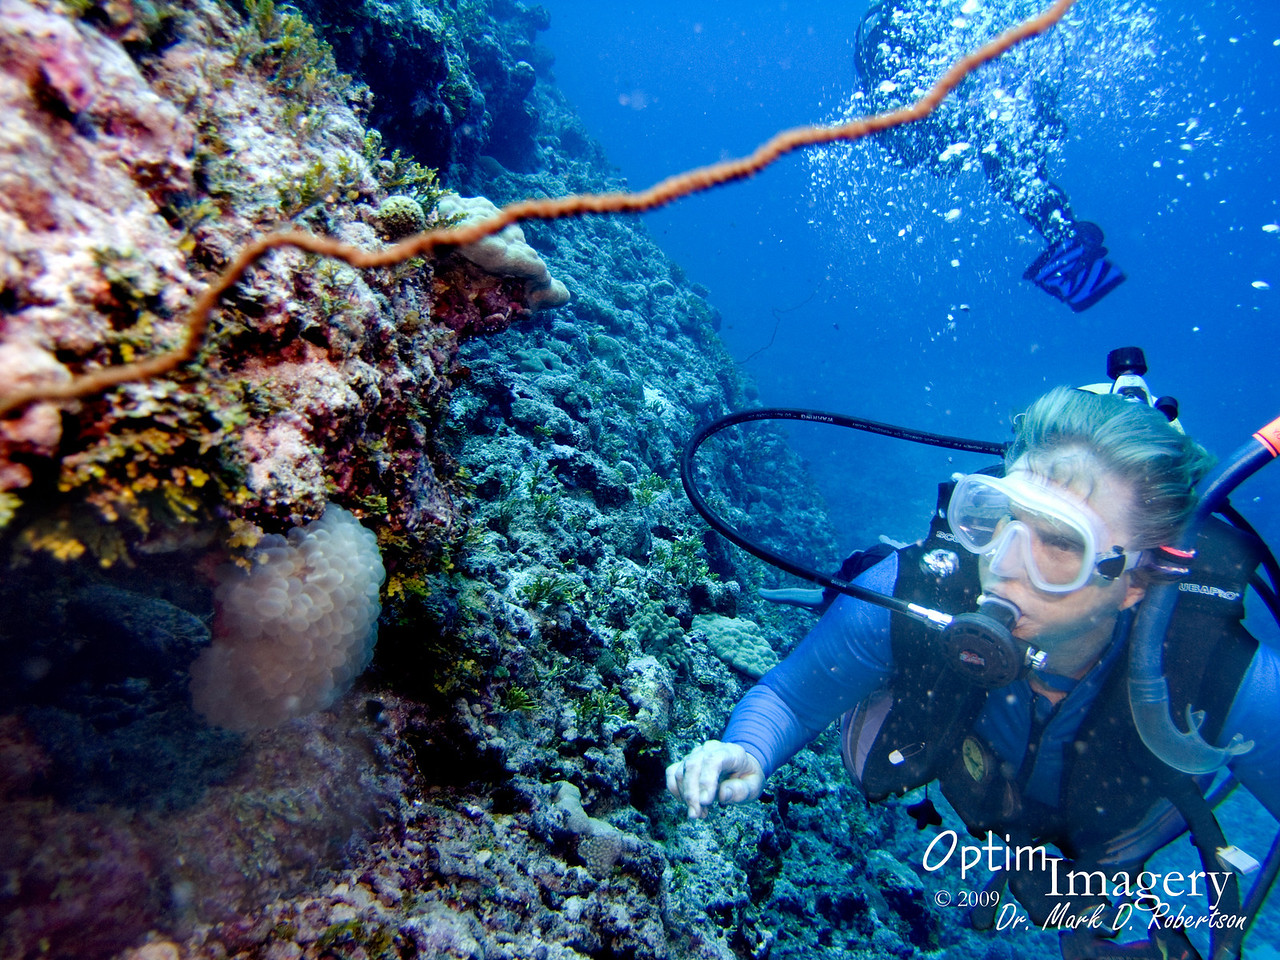 Here, Mary is looking at some Bubble coral, also called Grape coral (Plerogyra sinuosa).  I've heard that these guys can pack a noticeable sting, but Mary touched this one and had no ill effects.